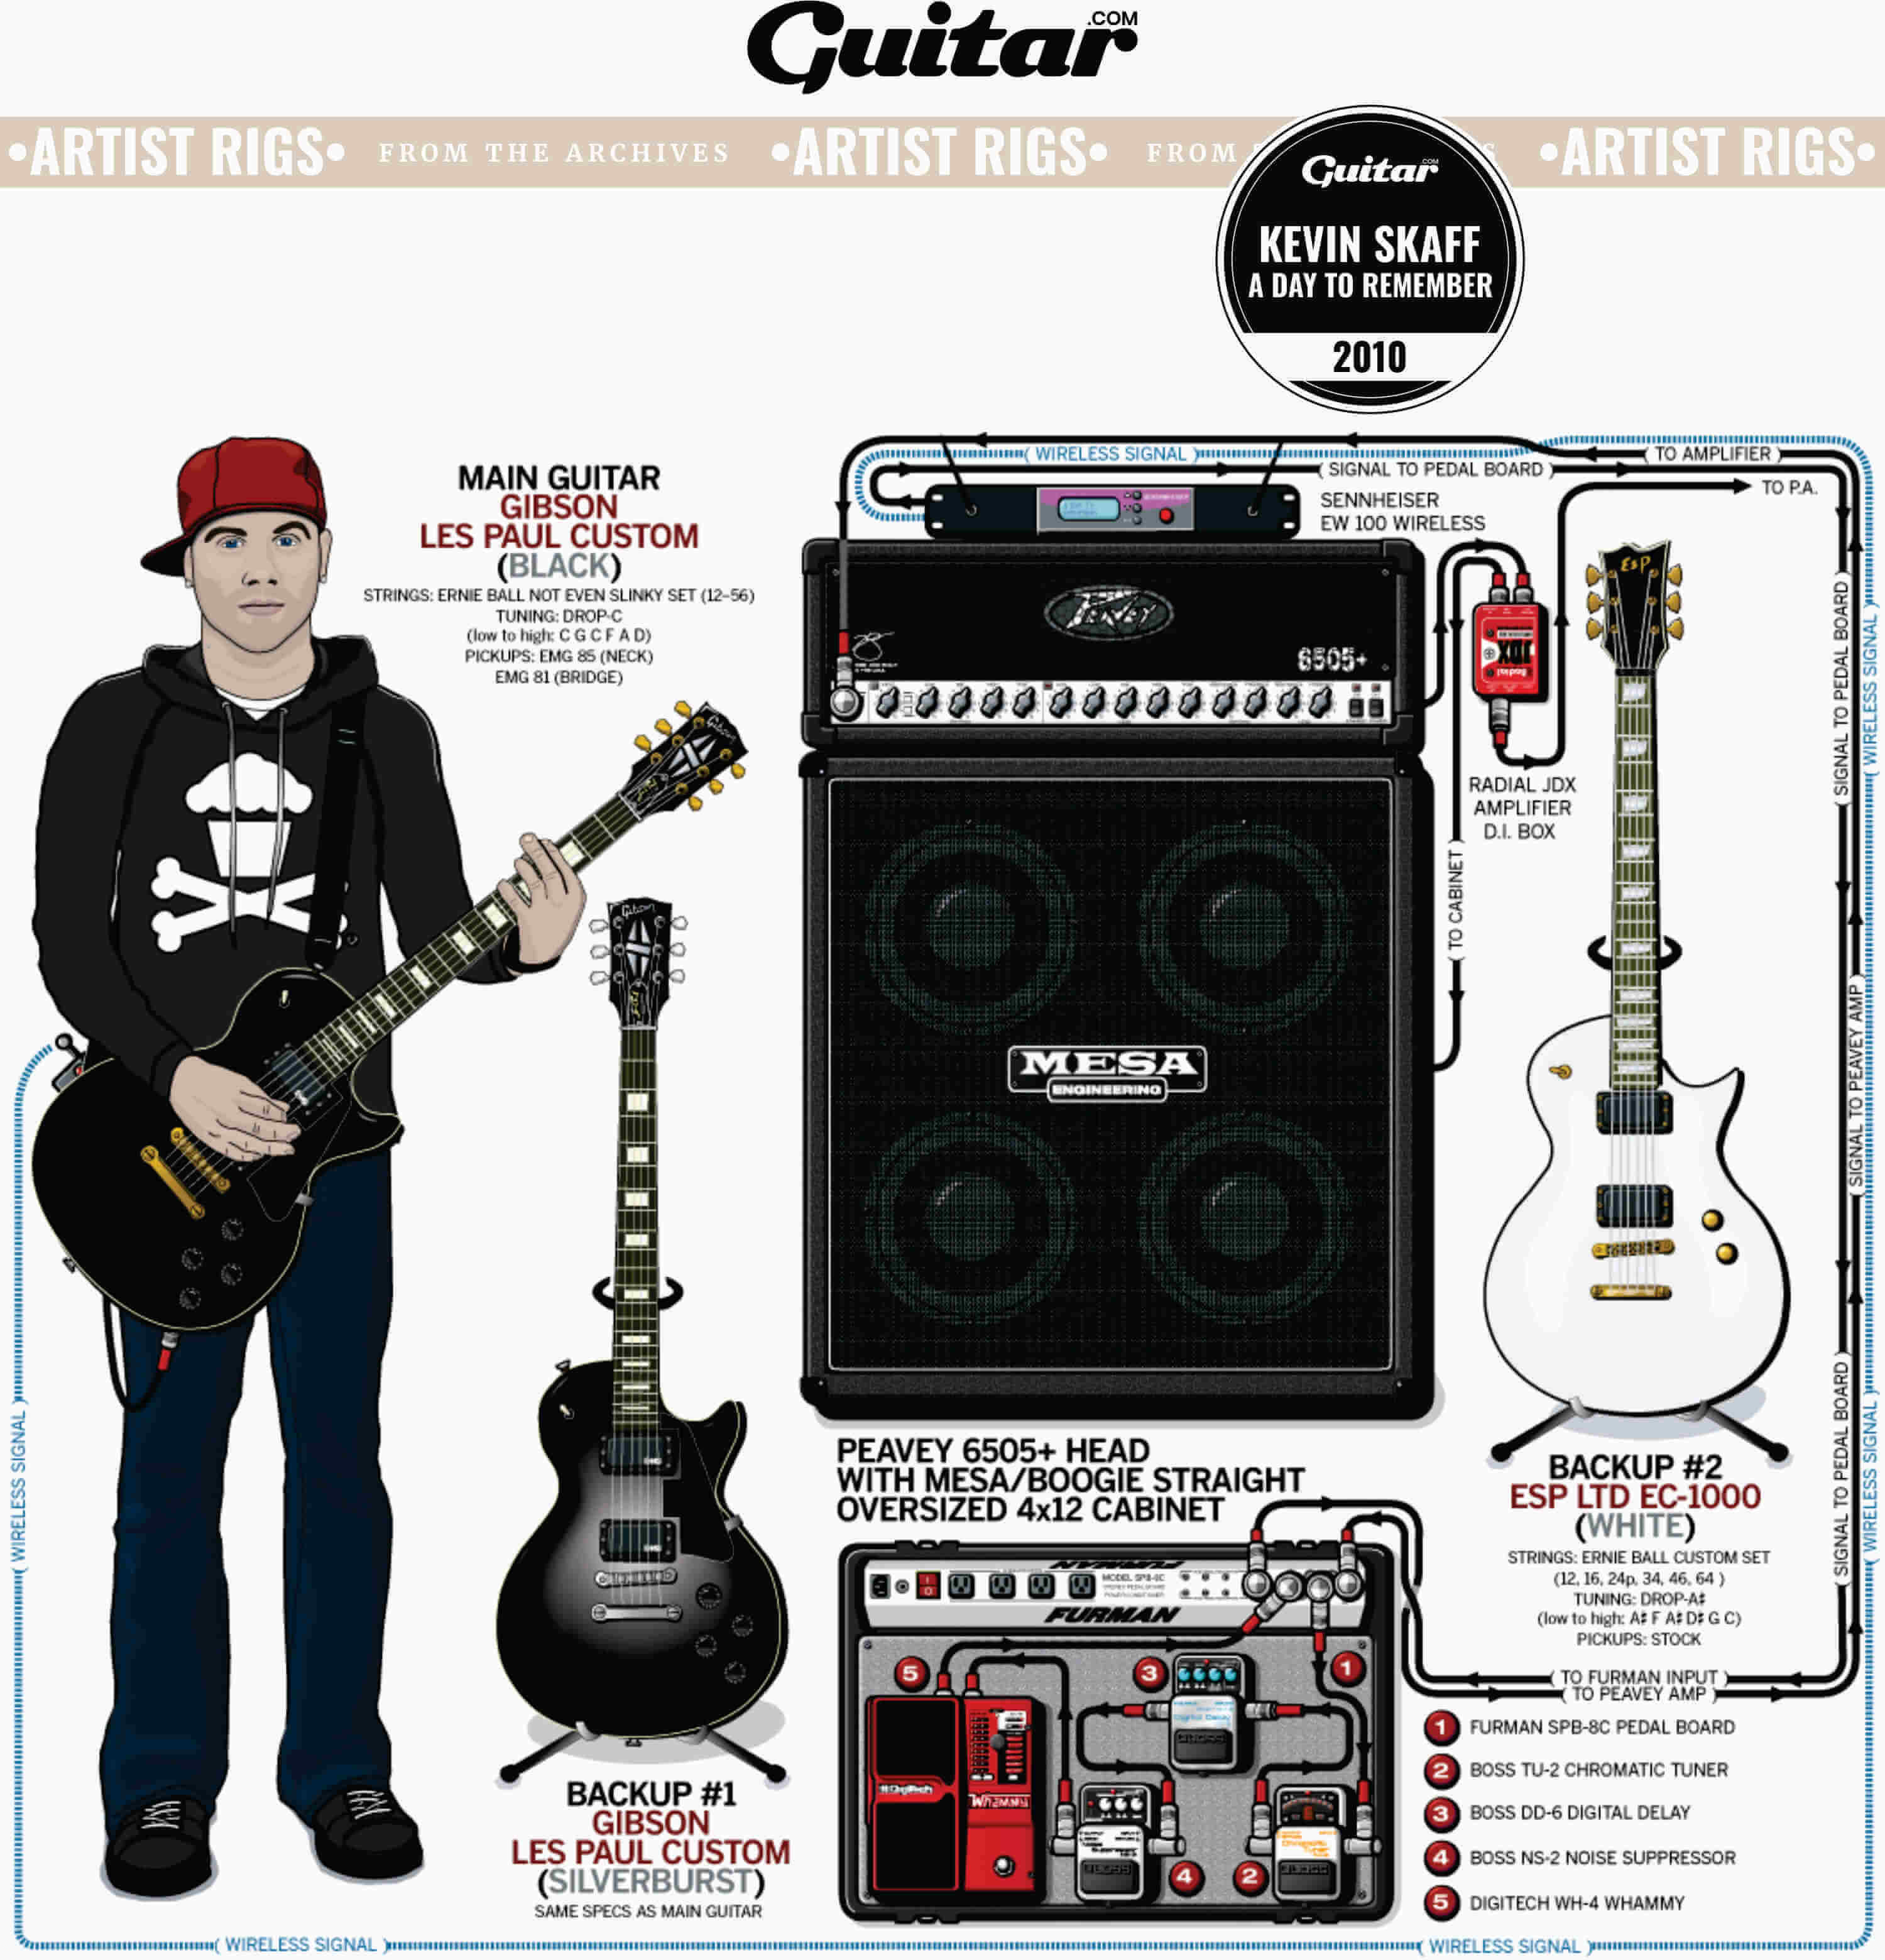 Rig Diagram: Kevin Skaff, A Day To Remember (2010)